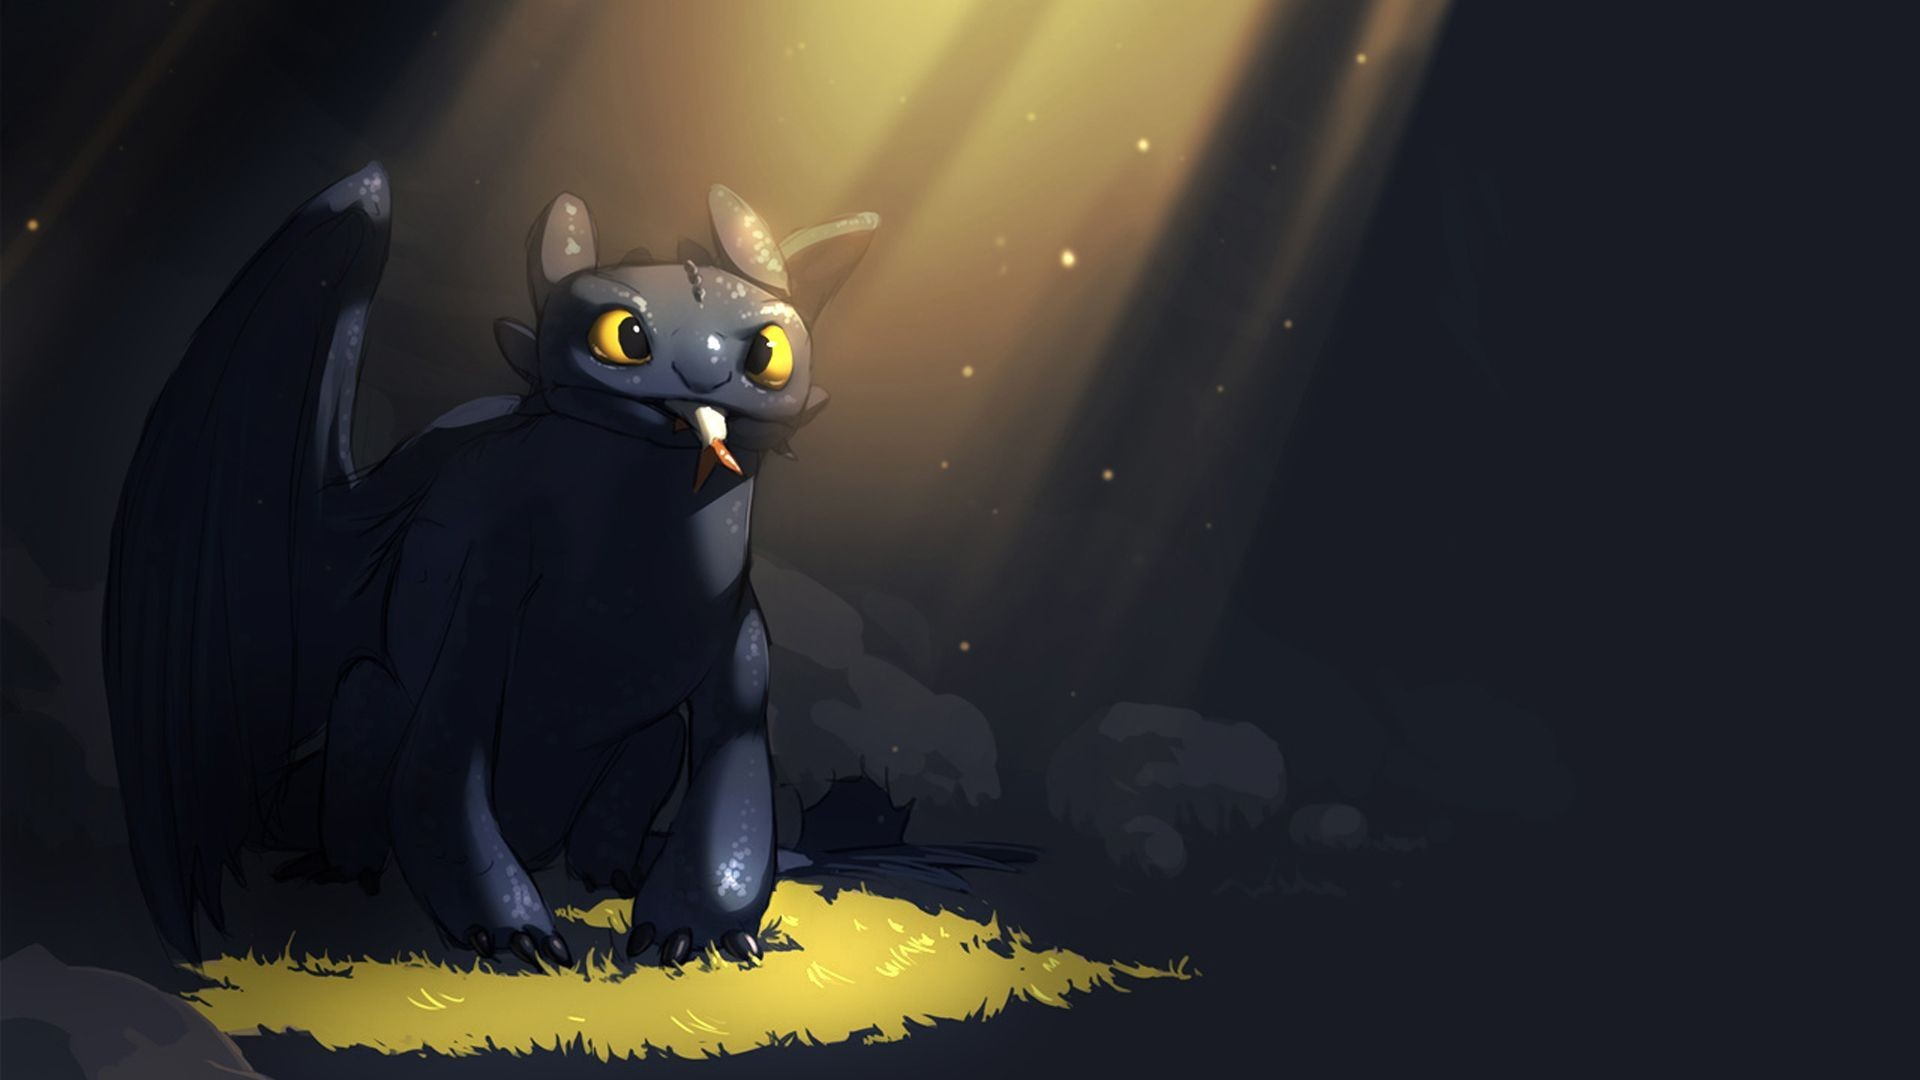 1920x1080 How To Train Your Dragon Toothless Download The Wallpapers